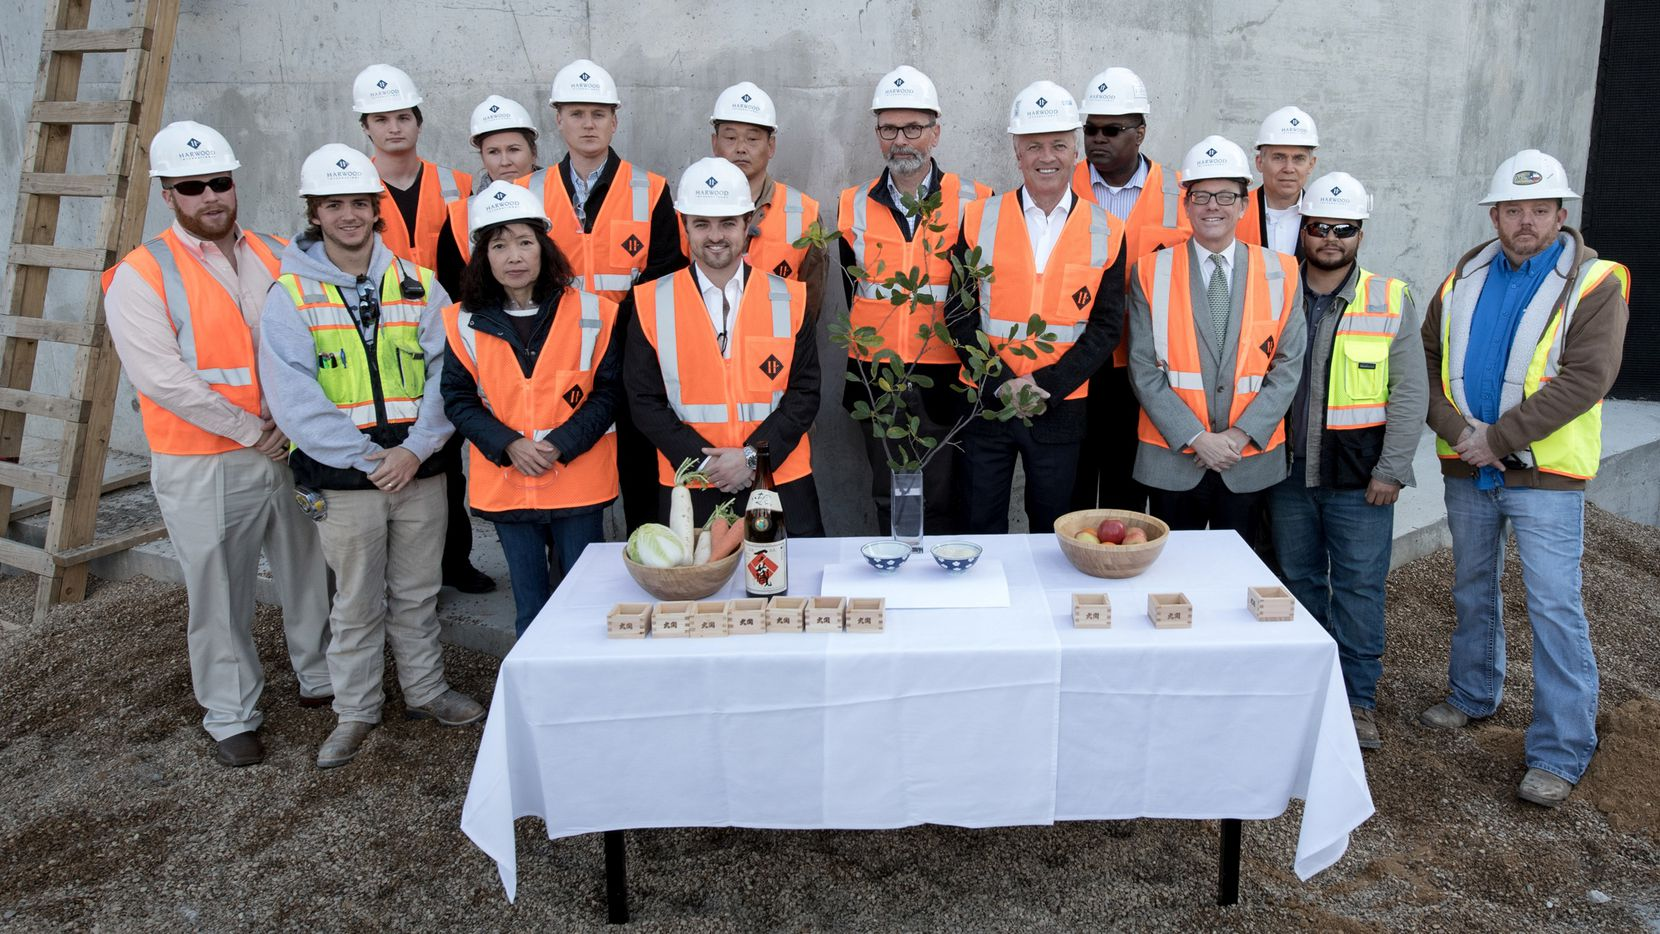 To kick off the building of the stone castle walls of the new Rolex Building in Dallas, the team (consisting of Harwood International, Rolex, HDF, HCMS and Sphinx) gathered on site to have a Joutoushiki ceremoney.